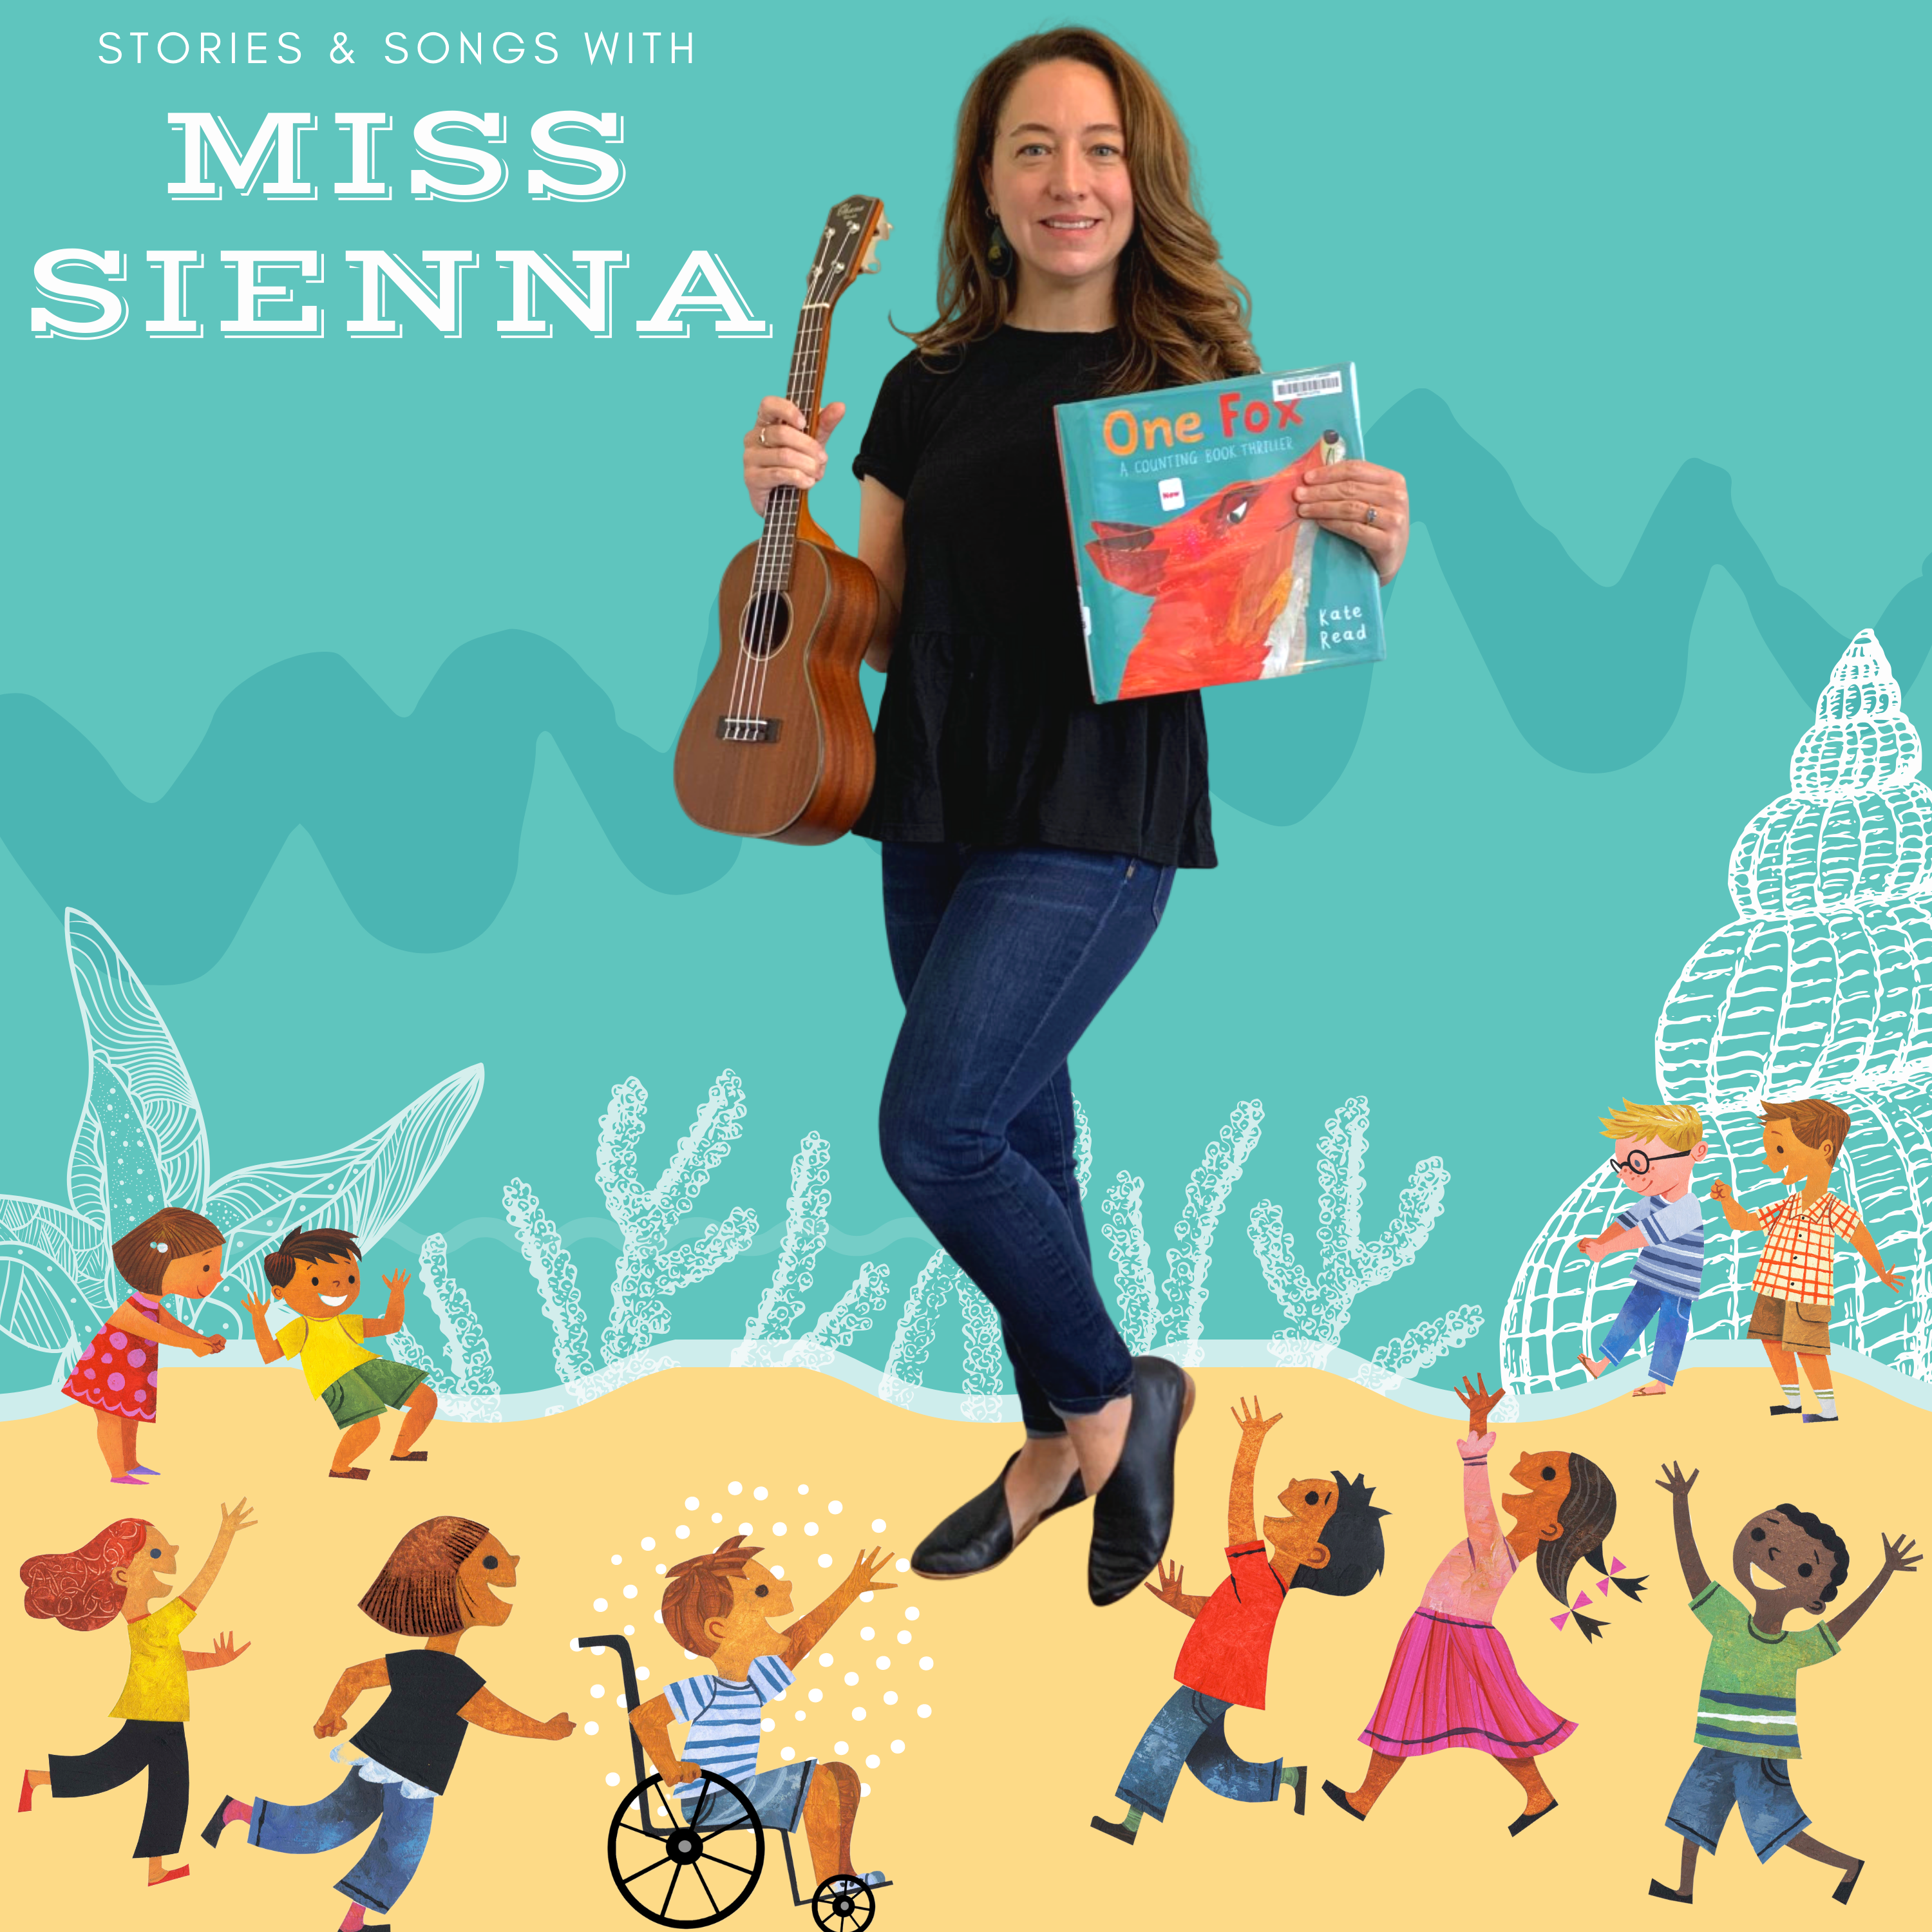 image depicts woman holding ukulele and picturebook against a cartoon sea. cartoon children run everywhere.